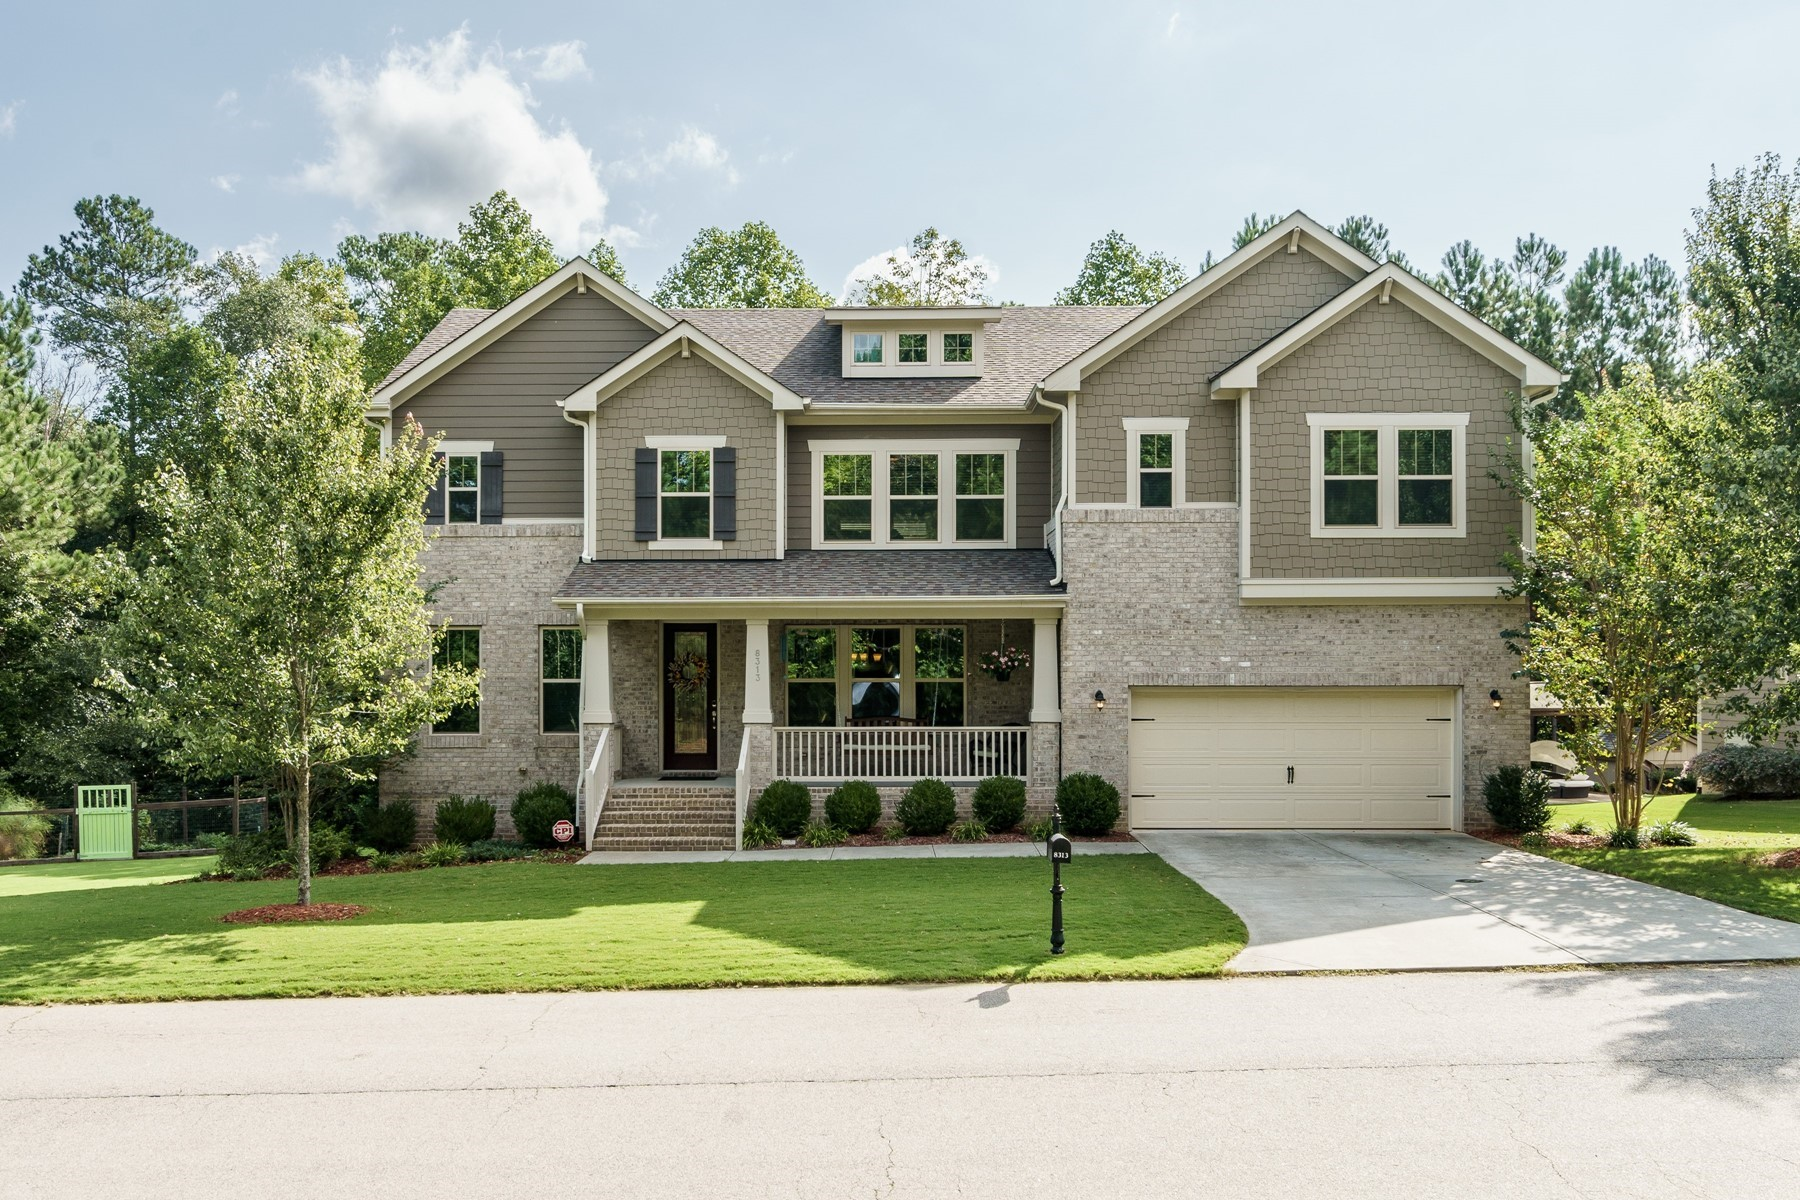 Single Family Homes for Sale at Belmont in Cary 8313 Henderson Rd Apex, North Carolina 27539 United States